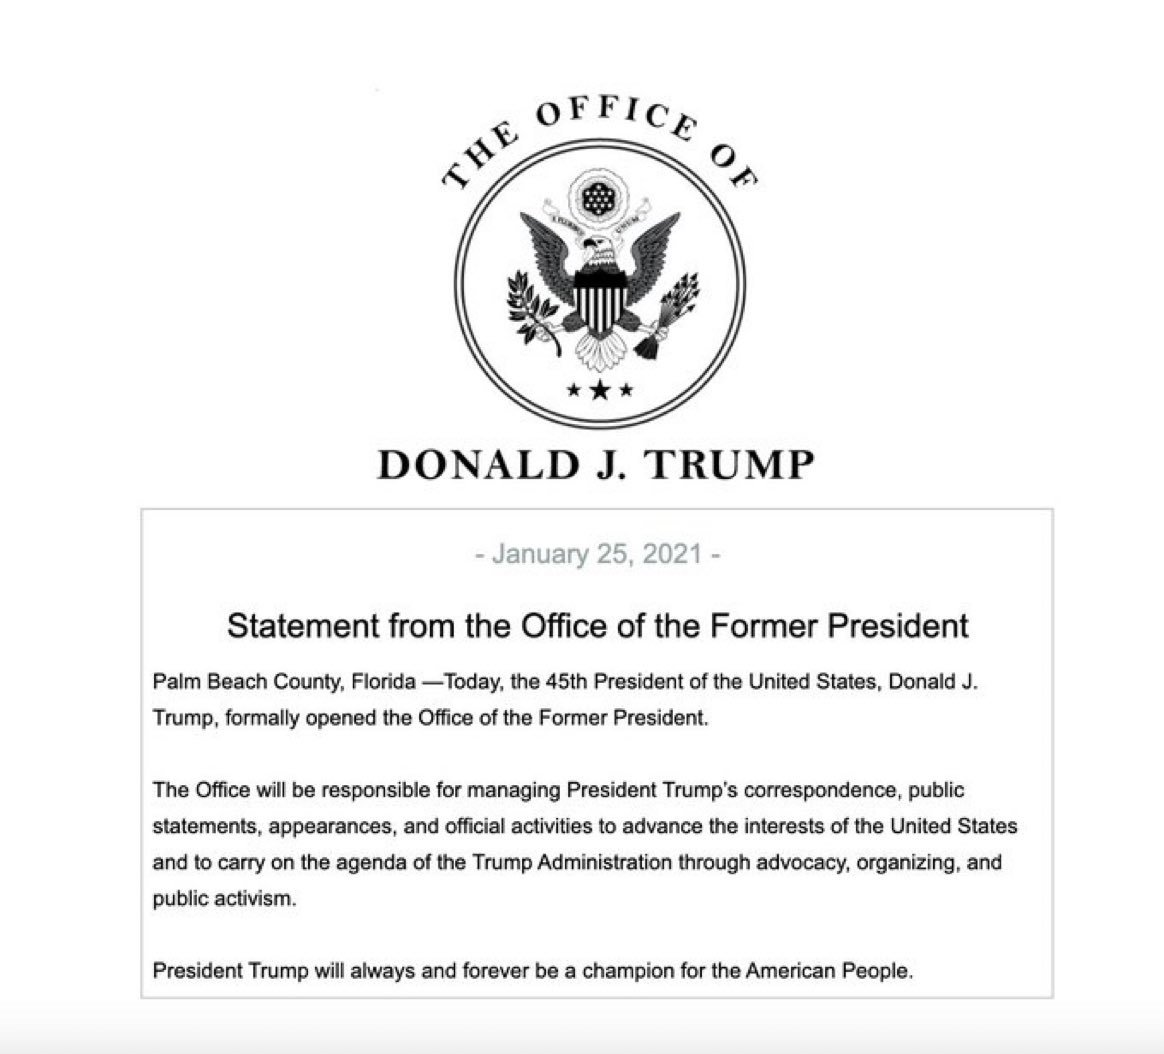 JUST IN - Donald Trump establishes the Office of the Former President.